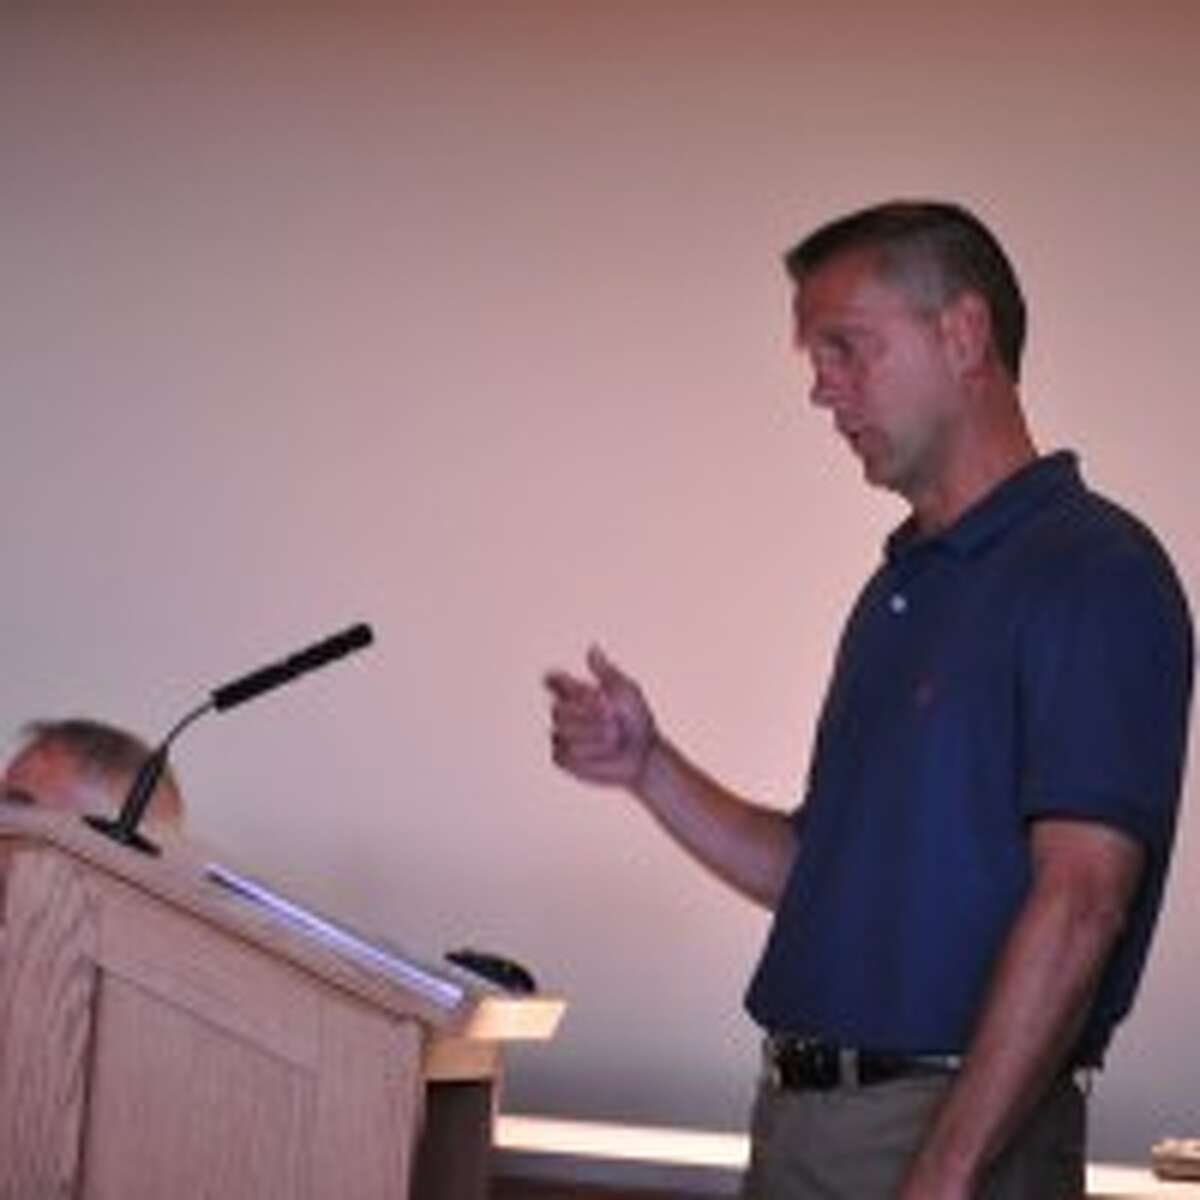 John Groothuis, of Grand Haven, attended Tuesday's Manistee City Council to talk about a proposed redevelopment of south Washington Street.